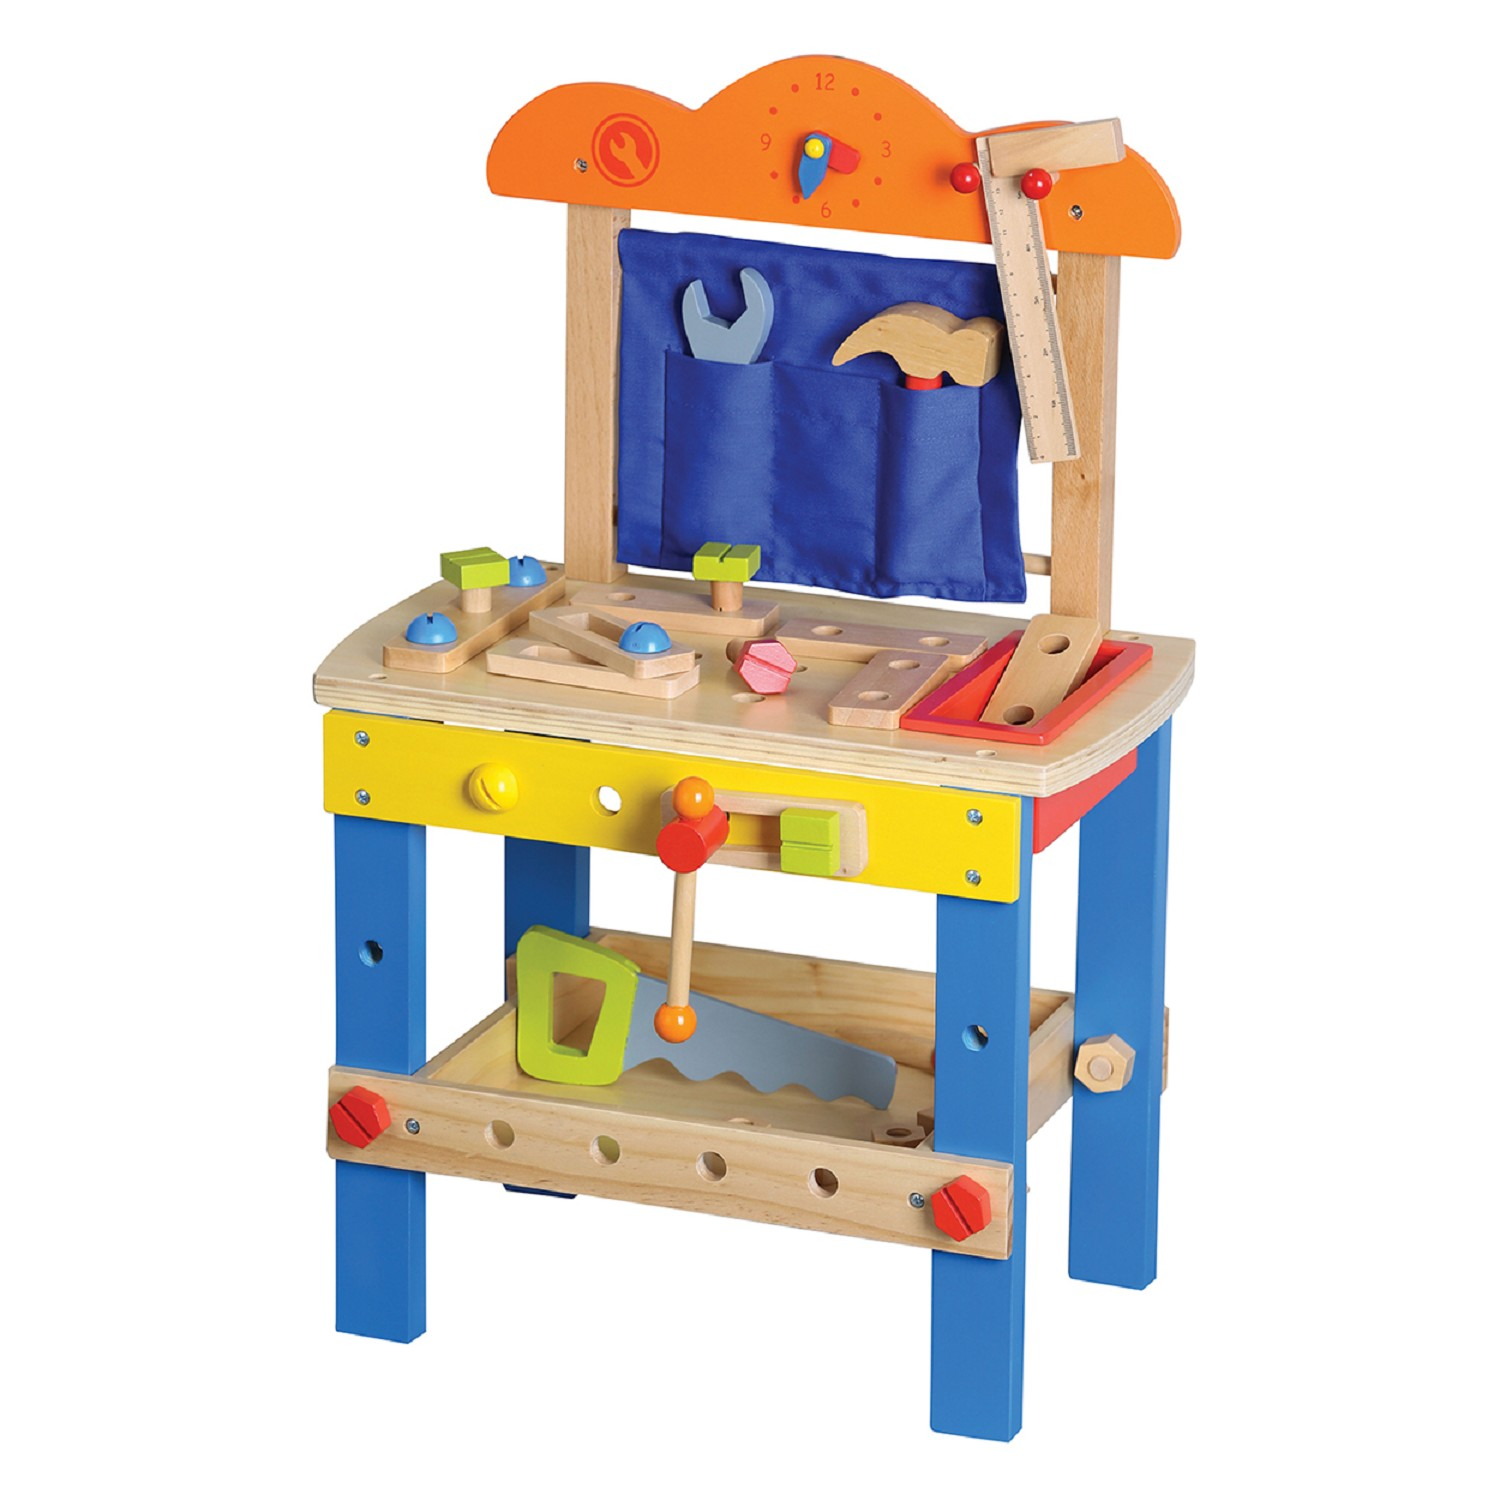 Wooden Toys Product : Lelin toys wooden workbench new classic